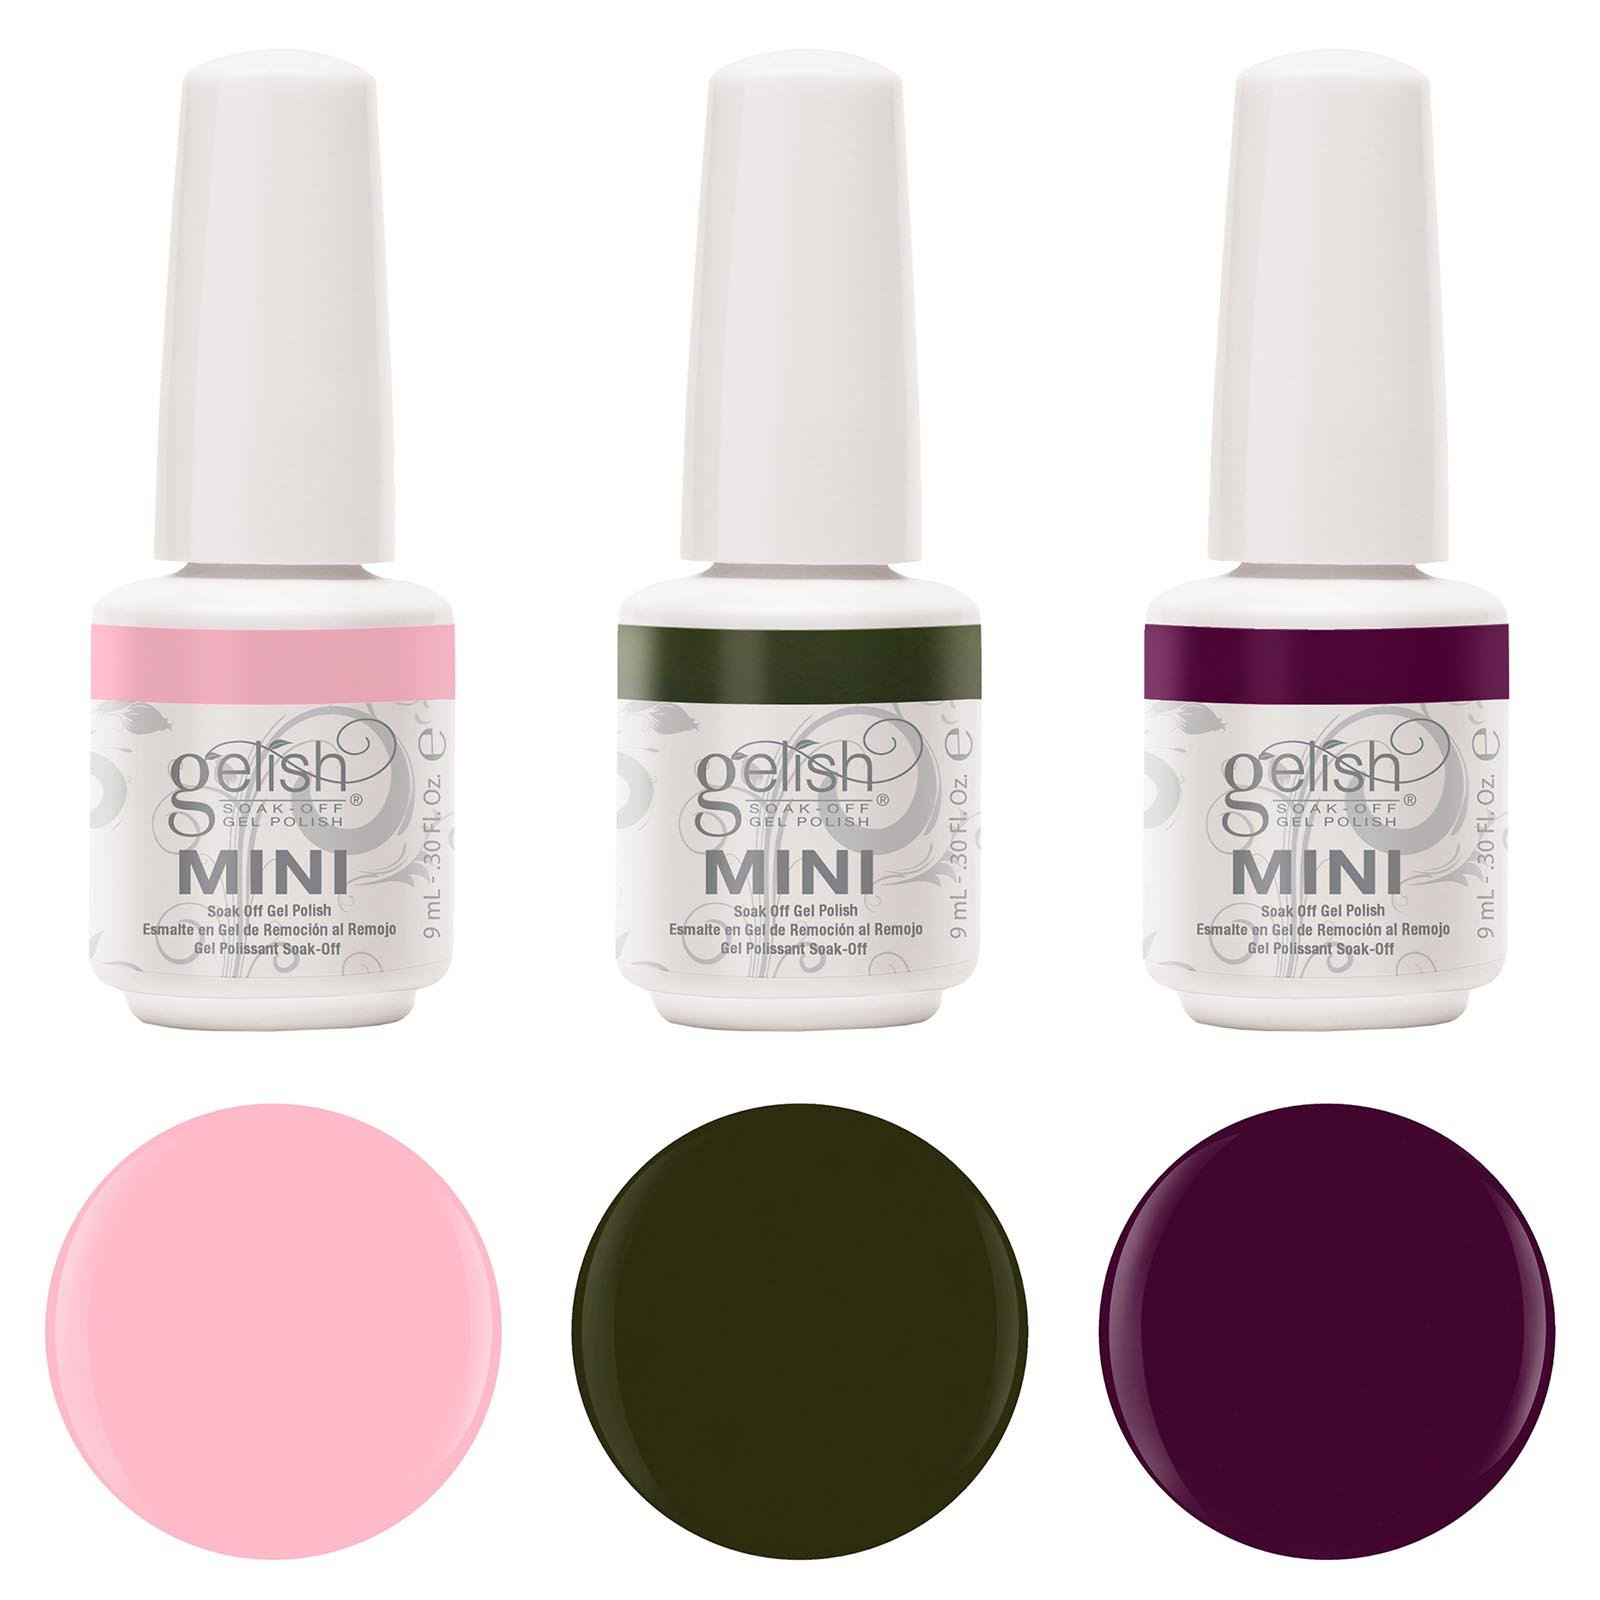 Gelish Harmony Complete Starter Led Gel Nail Polish Kit with 5 Additional Colors by Gelish (Image #3)